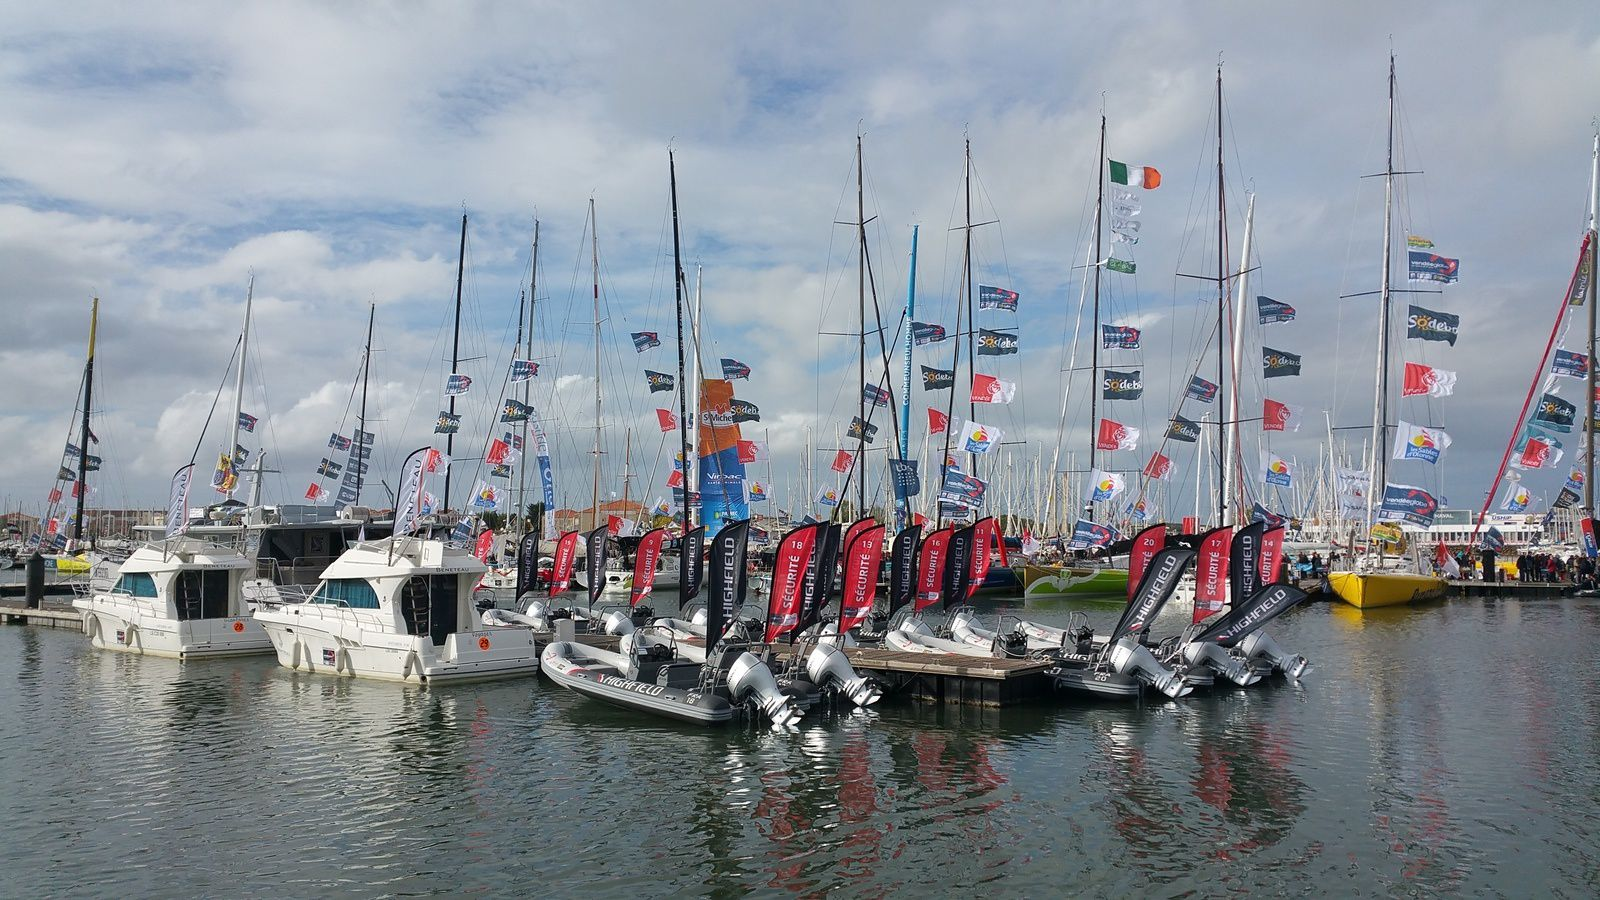 VILLAGE VENDEE GLOBE